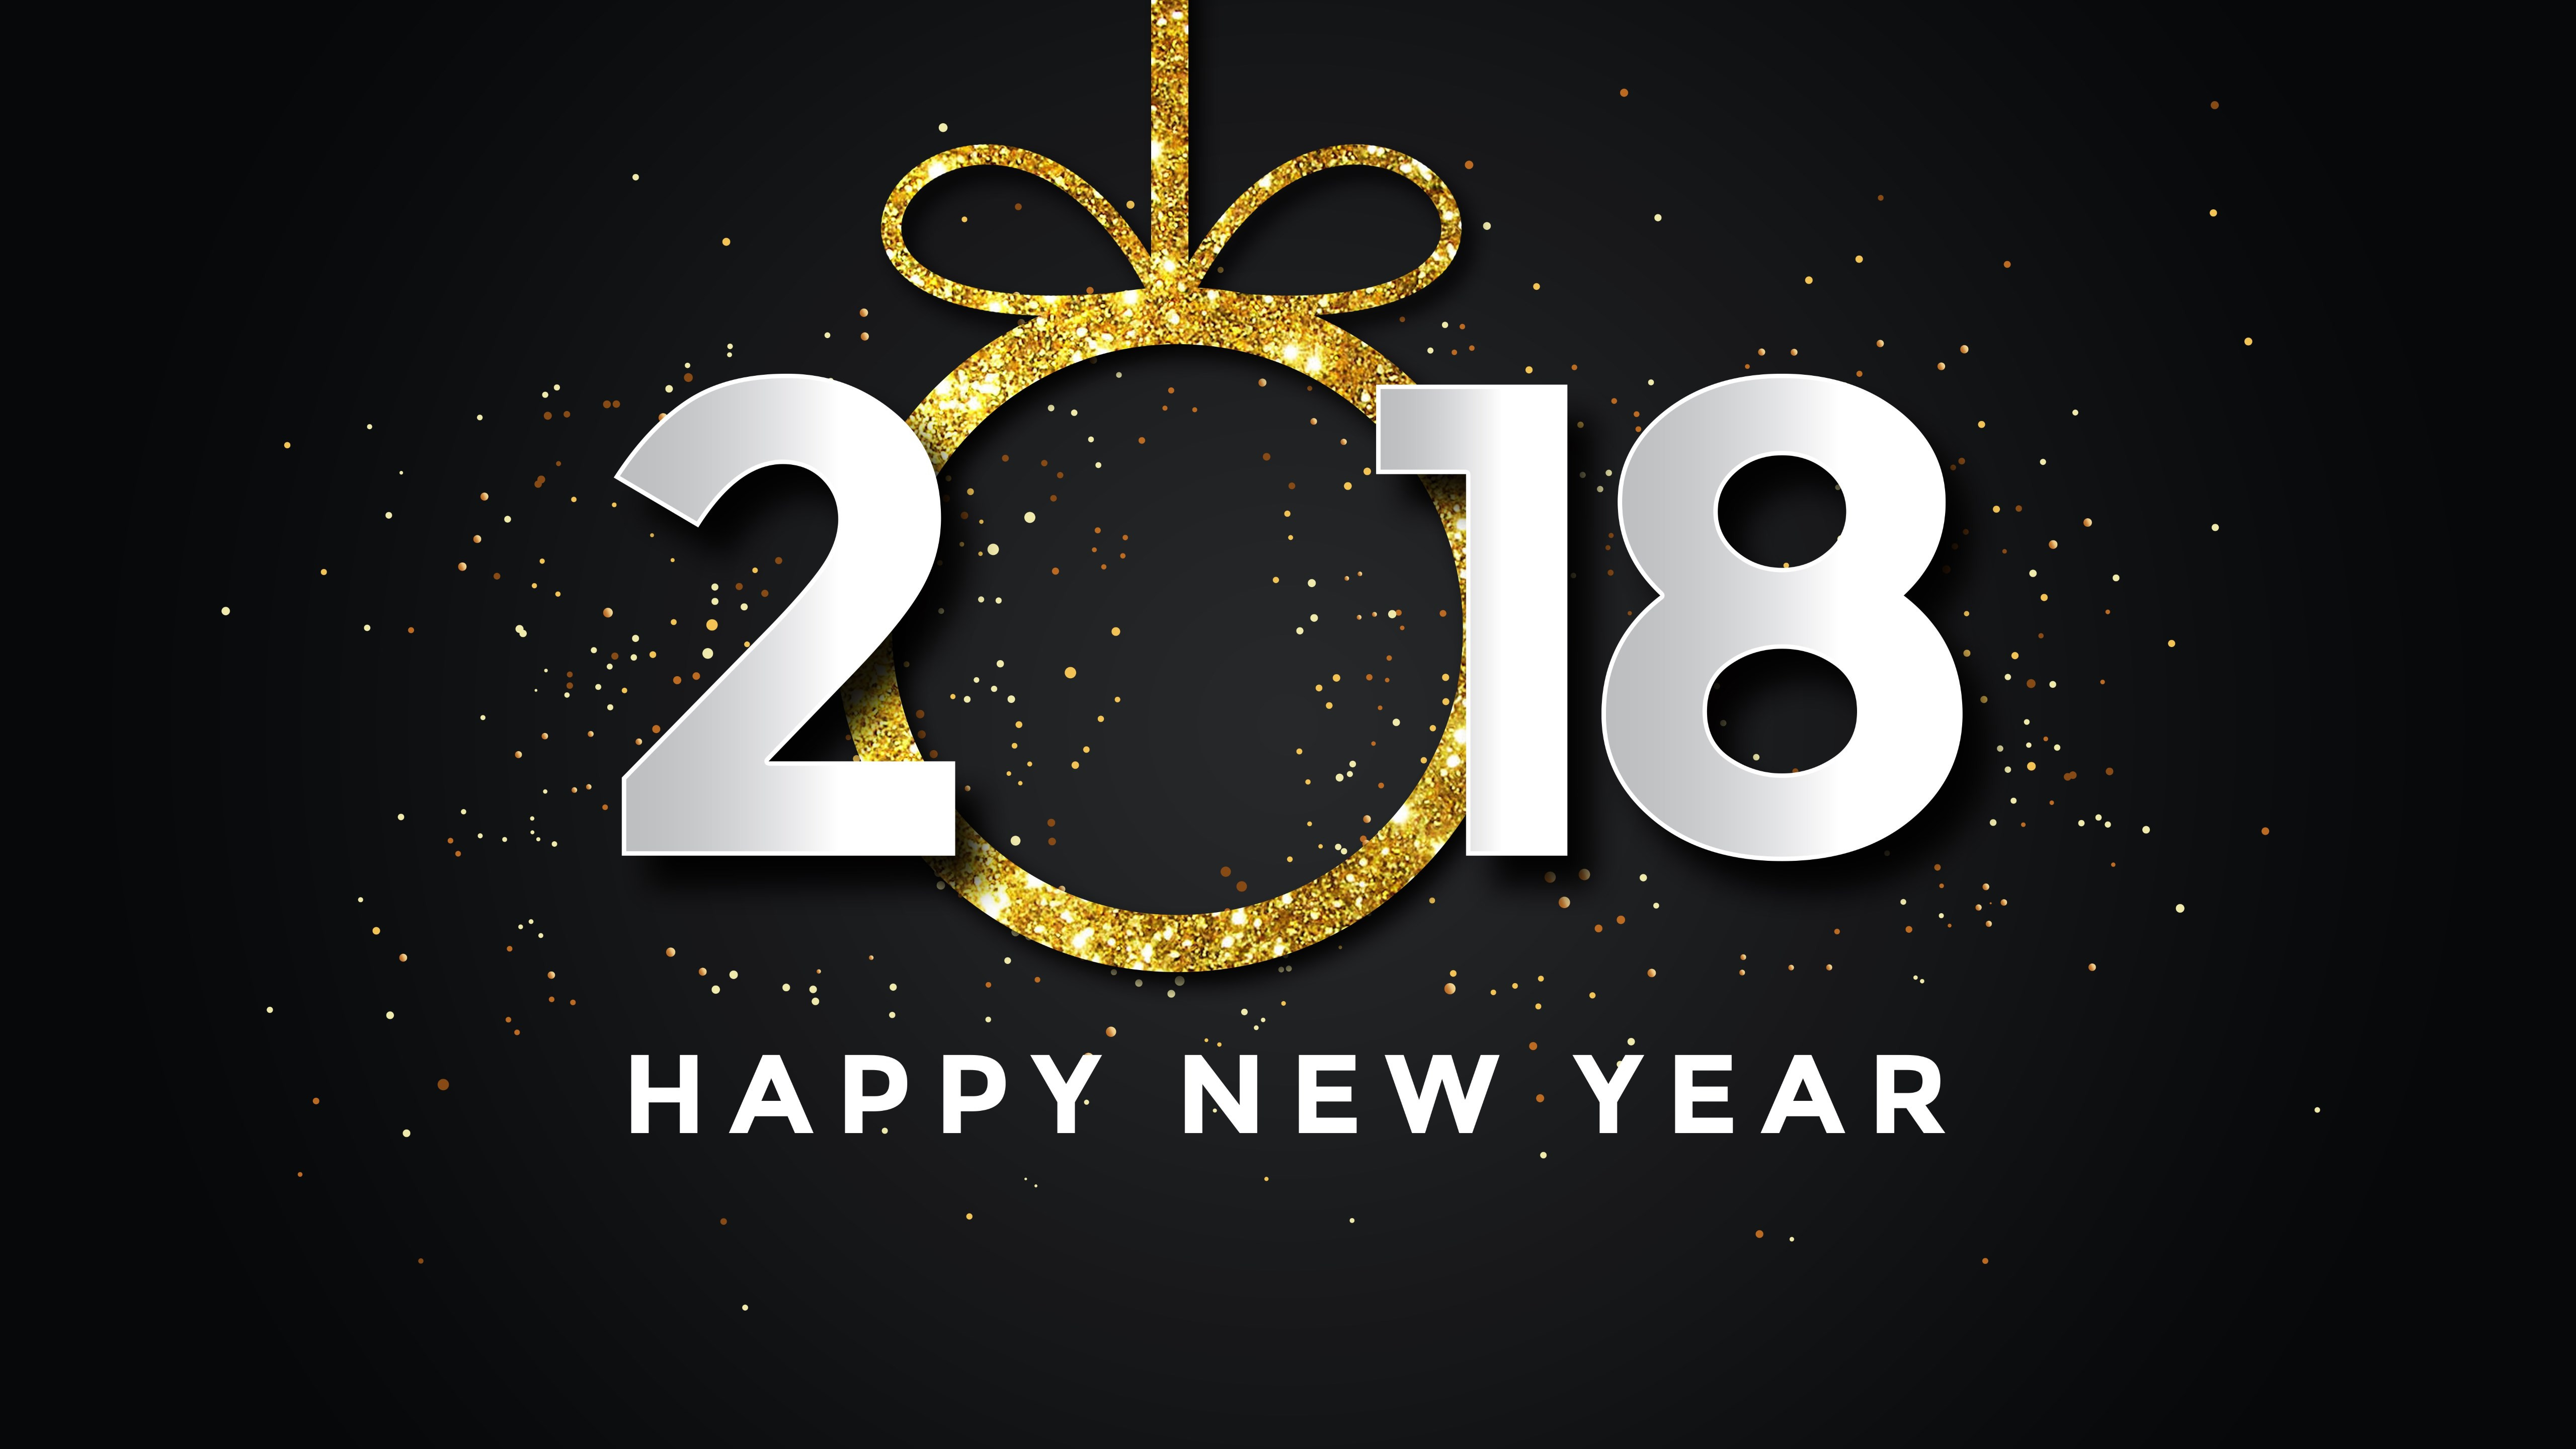 Happy New Year 2018 wallpaper 5120x2880